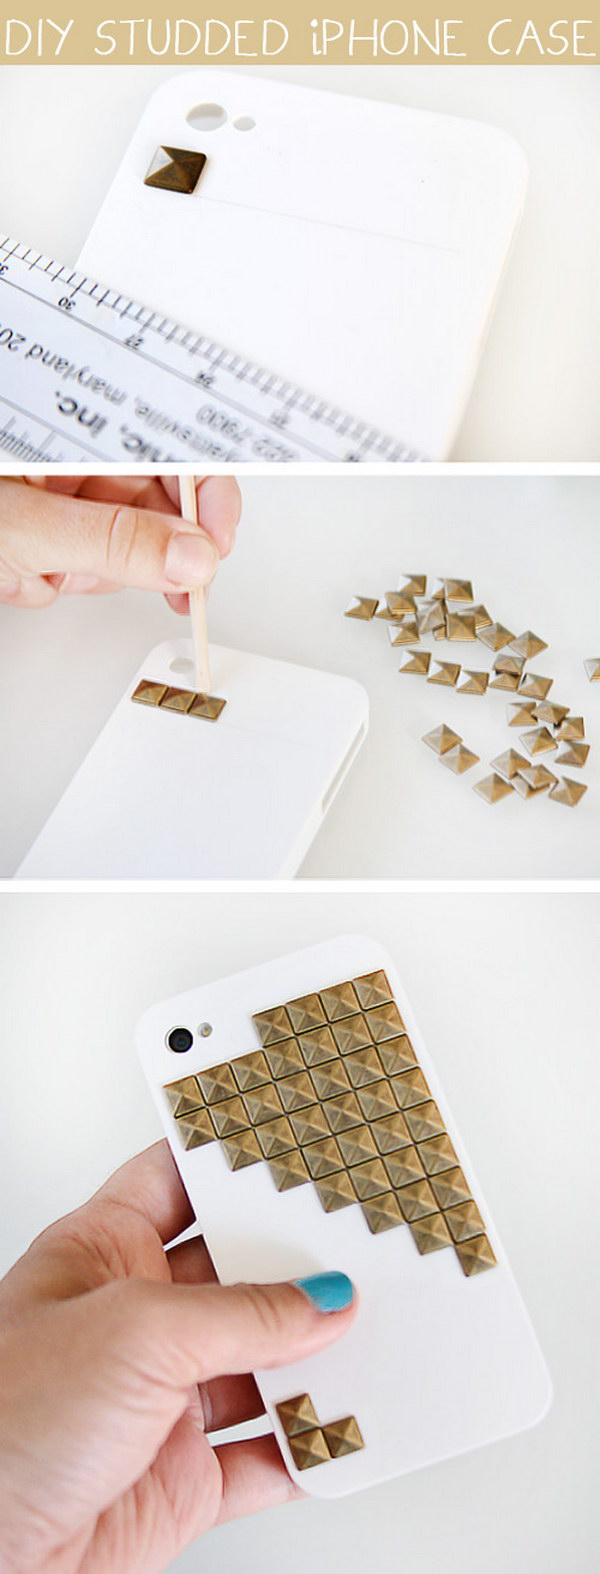 DIY Studded iPhone Case.